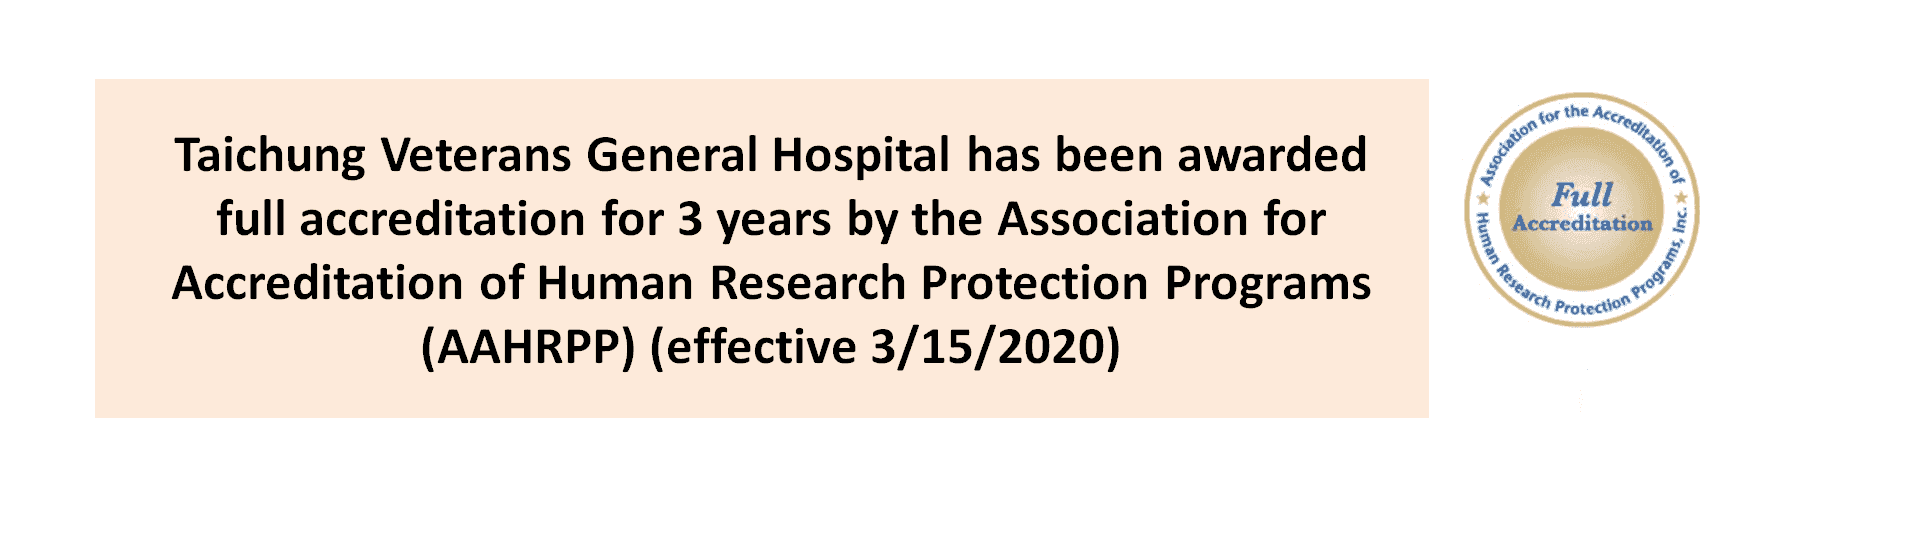 Awarded full accreditation by the AAHRPP